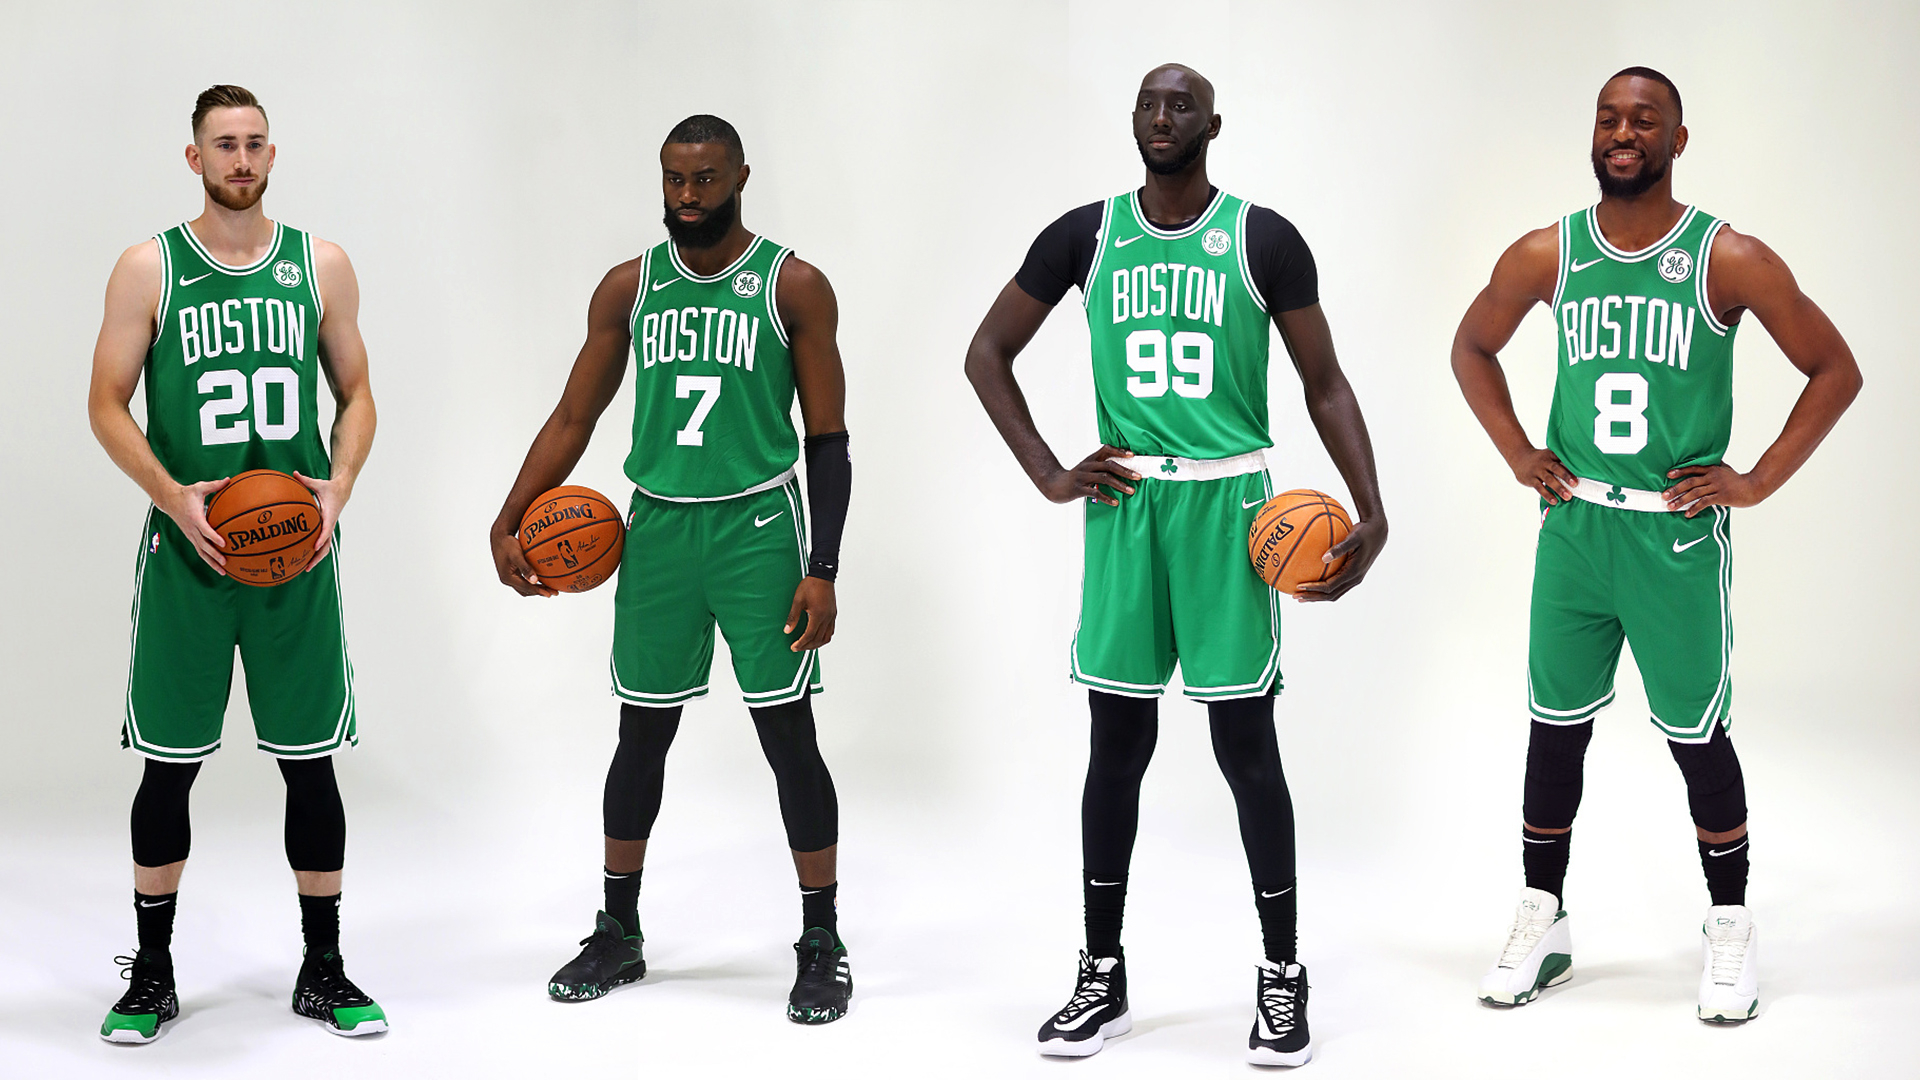 Boston Celtics 2019 20 Season Preview Crownhoops